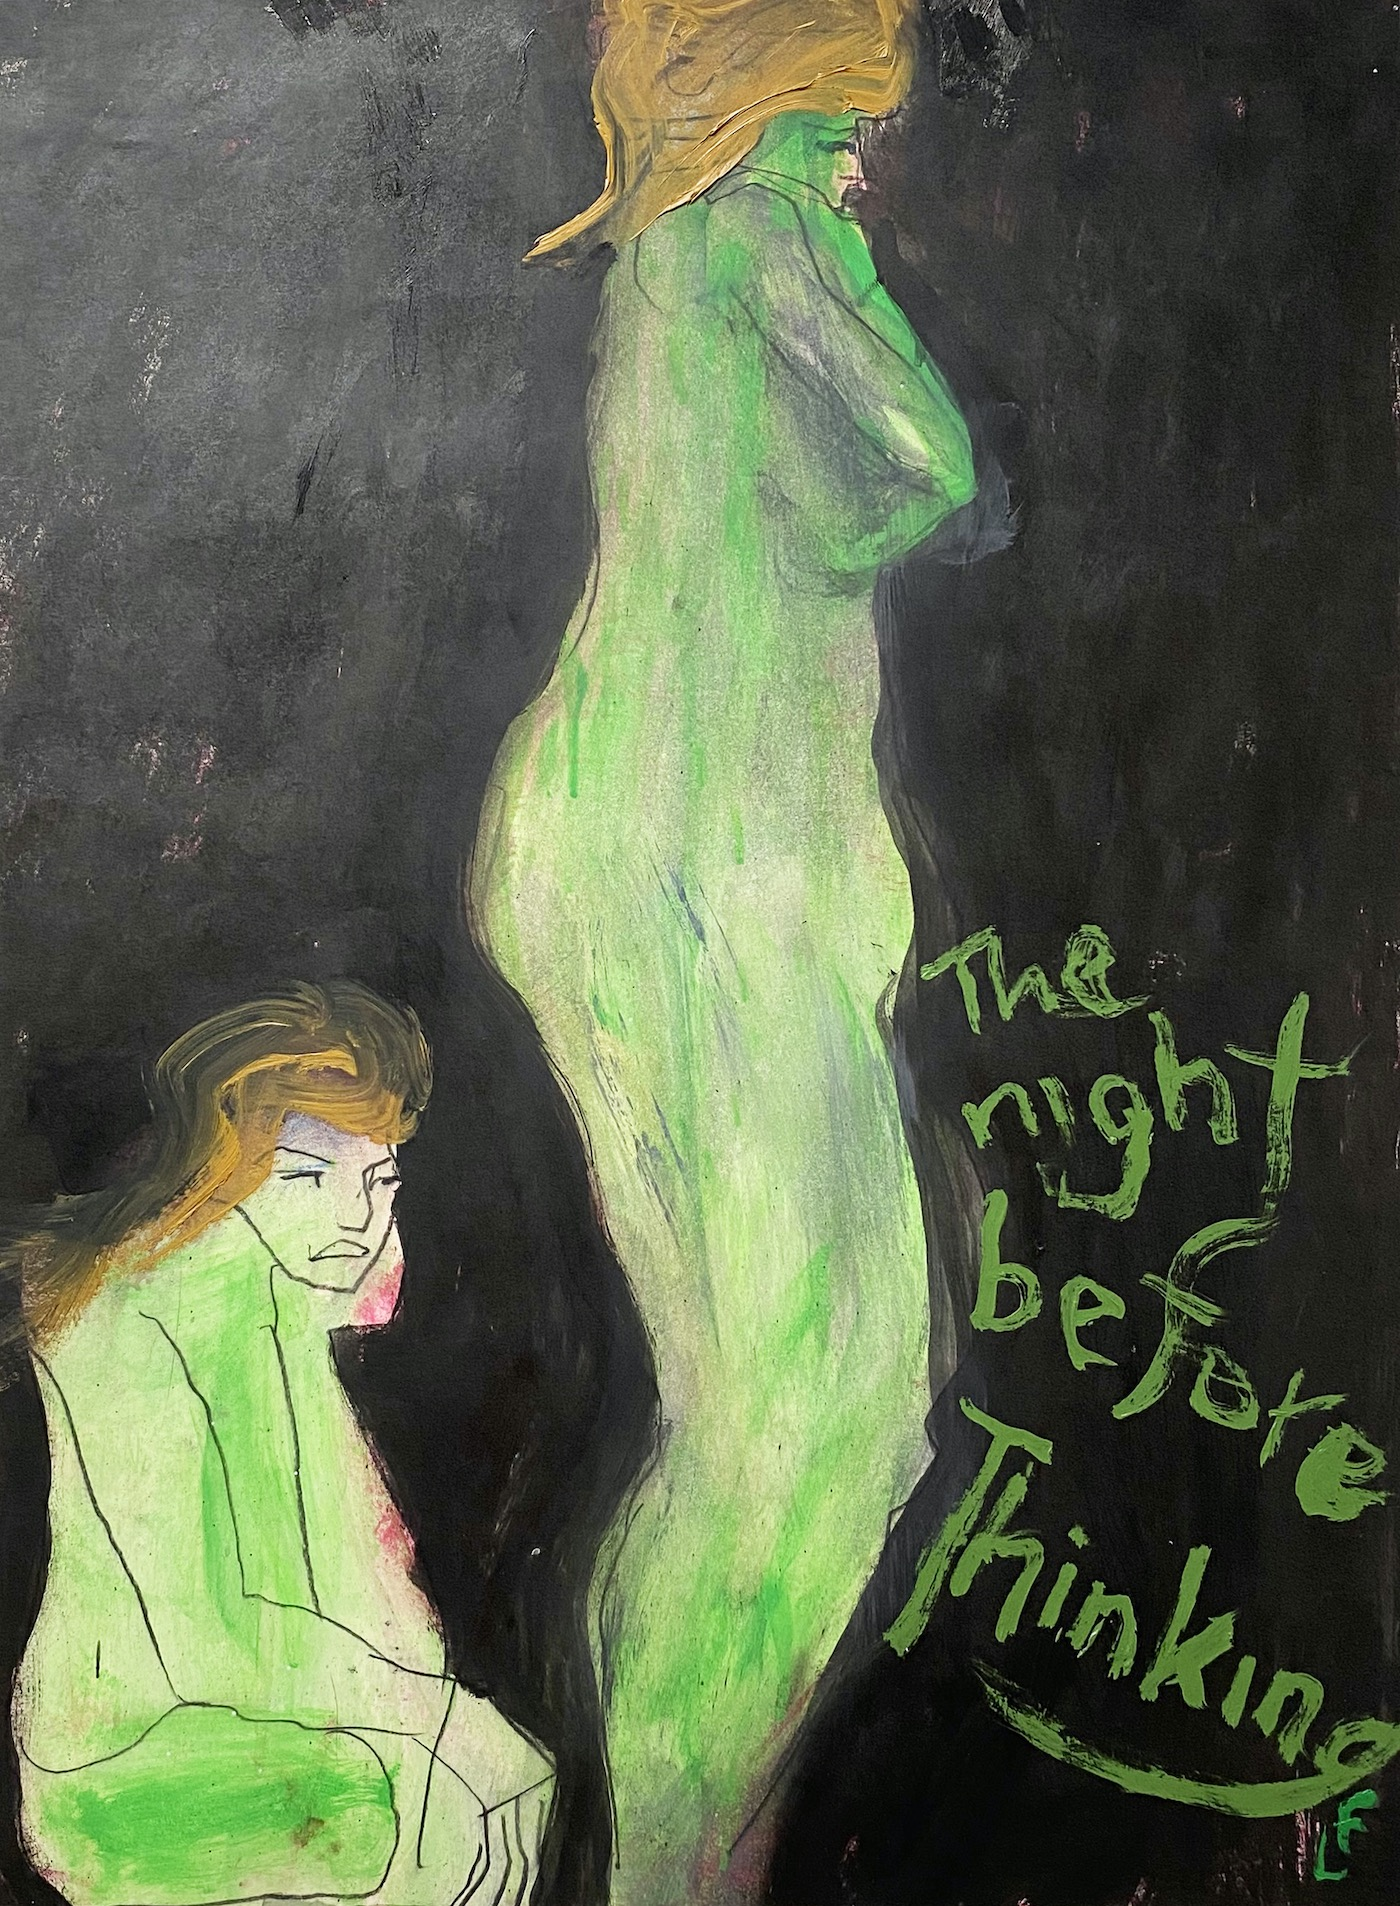 "Lawrence Ferlinghetti, ""The Night Before Thinking"" (1990), oil paint and black conte stick on paper, 23 3⁄four x 18 inches; 30 x 24 inches matted"